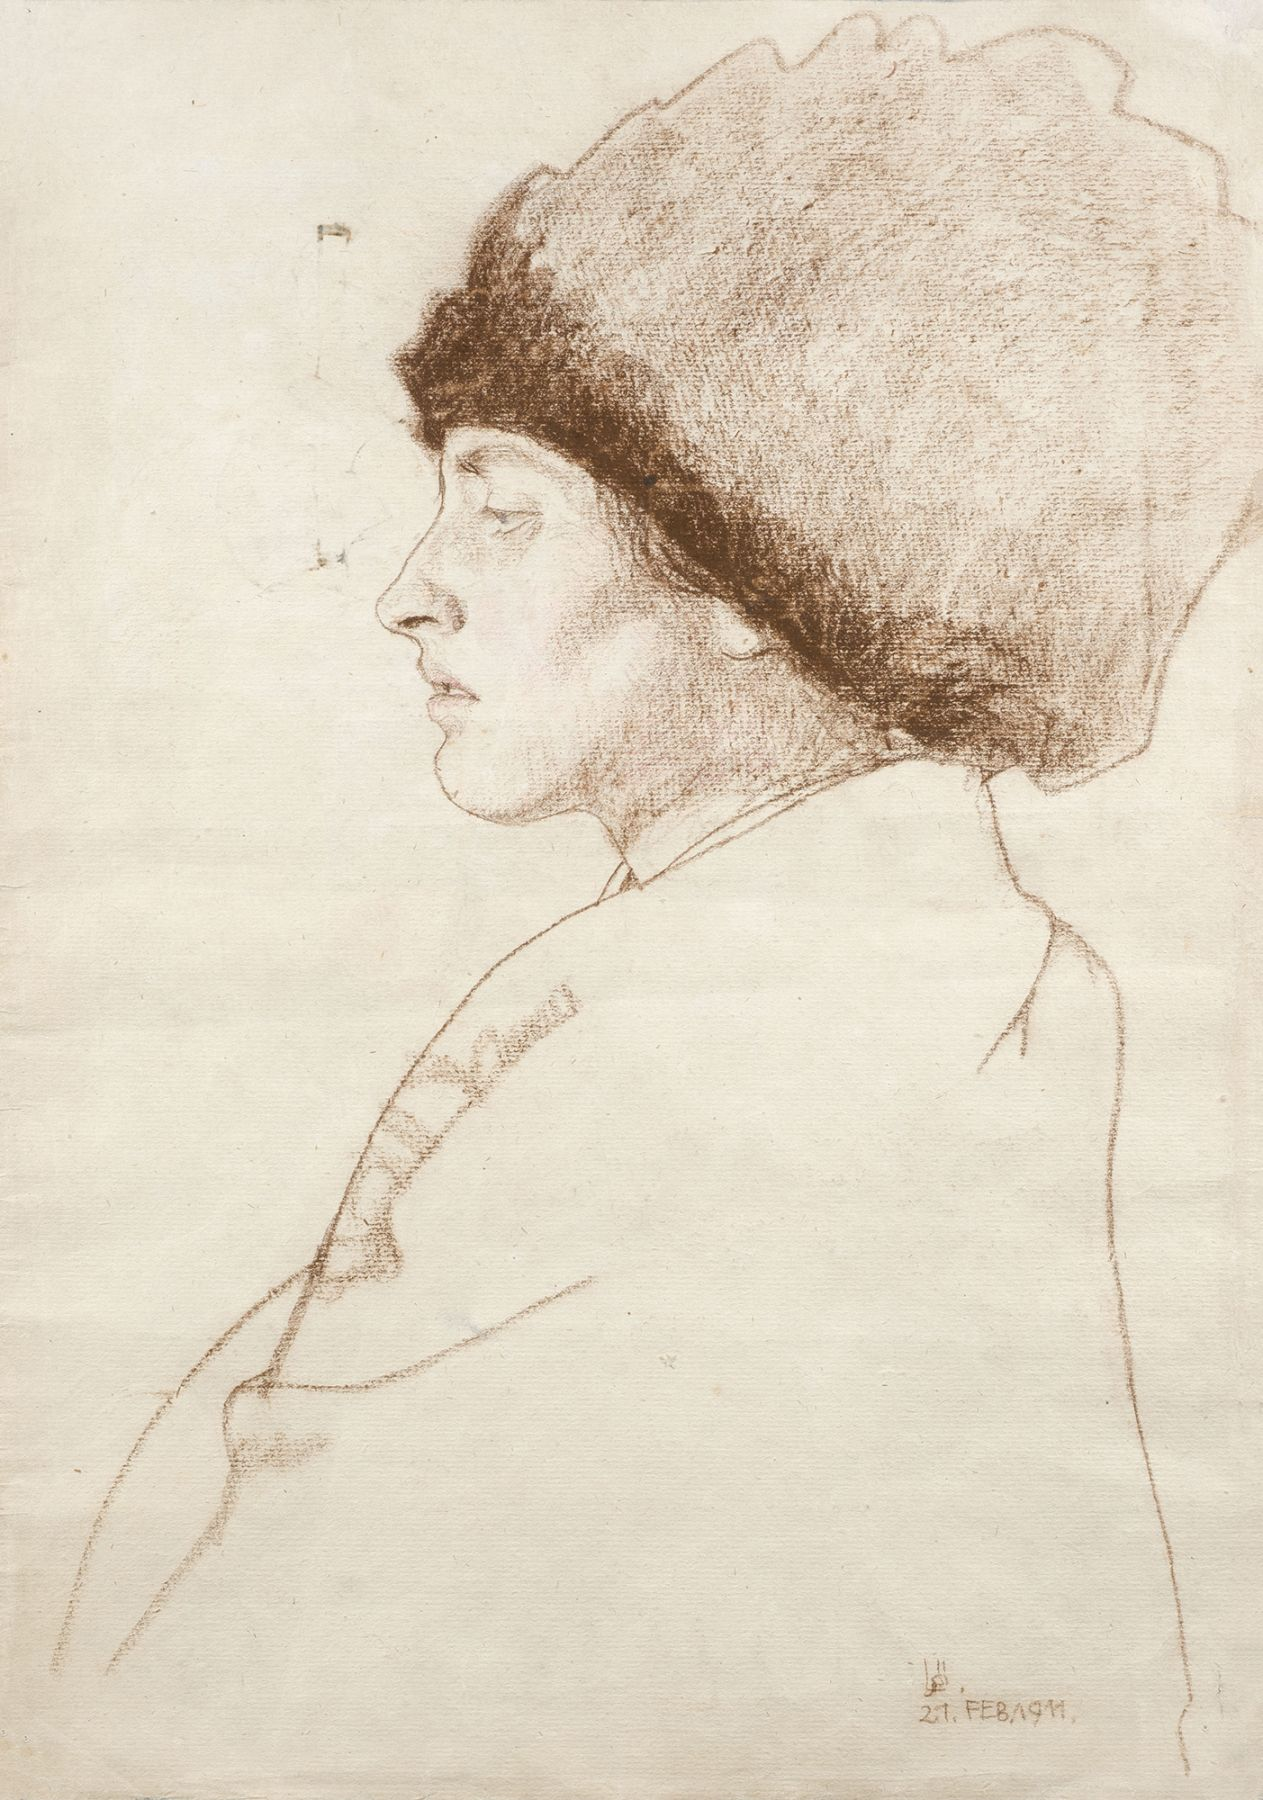 Berthold Löffler  Portrait of Melitta, the artist's wife (recto) / Designs for a poster (verso), 1911  Red chalk and color crayon on paper (recto) / Gouache and ink (verso)  18 x 12 1/2 inches